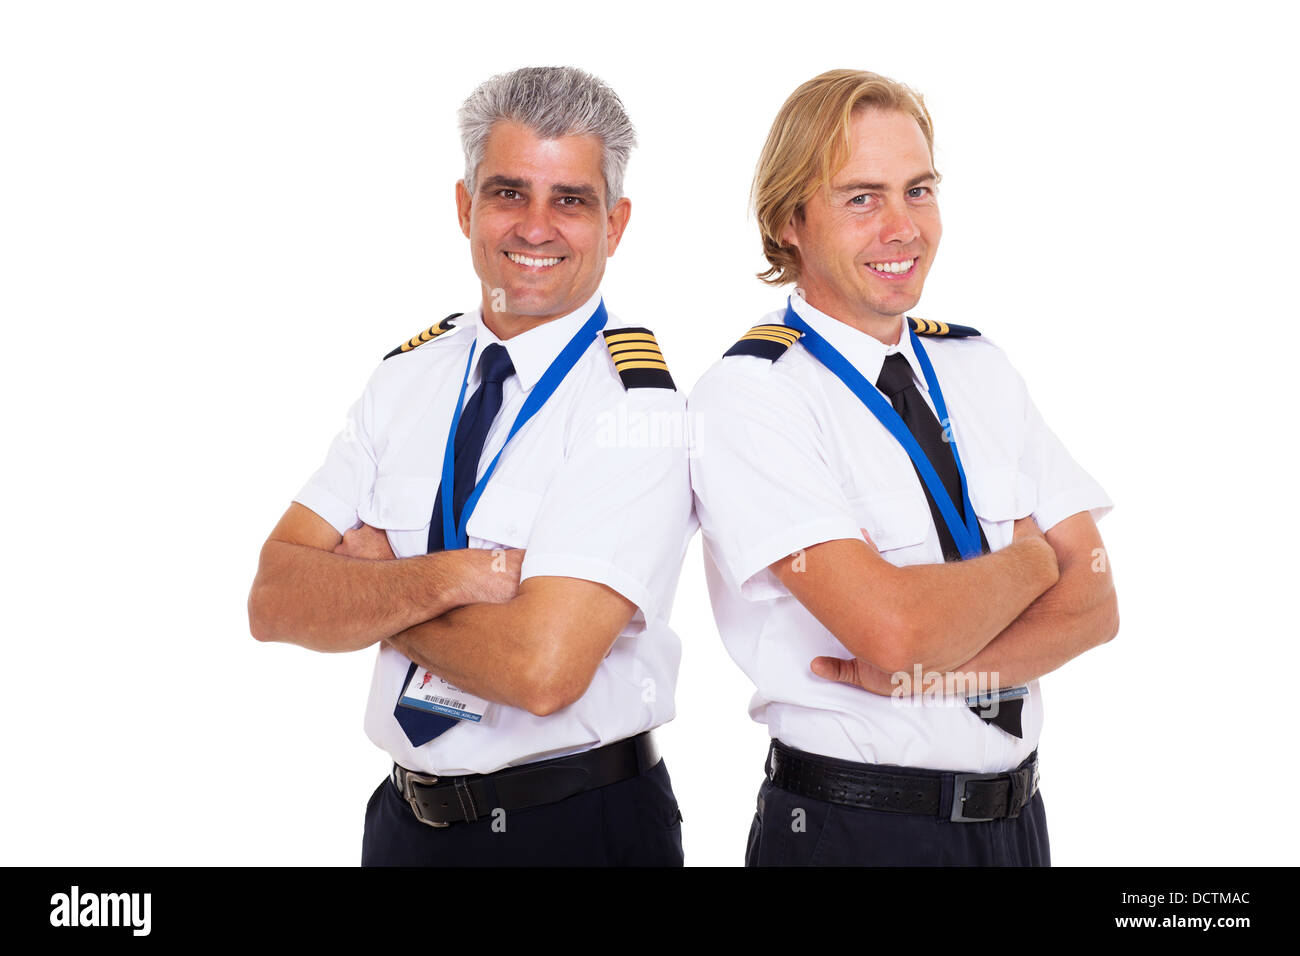 two airline pilots wearing uniform portrait on white background - Stock Image